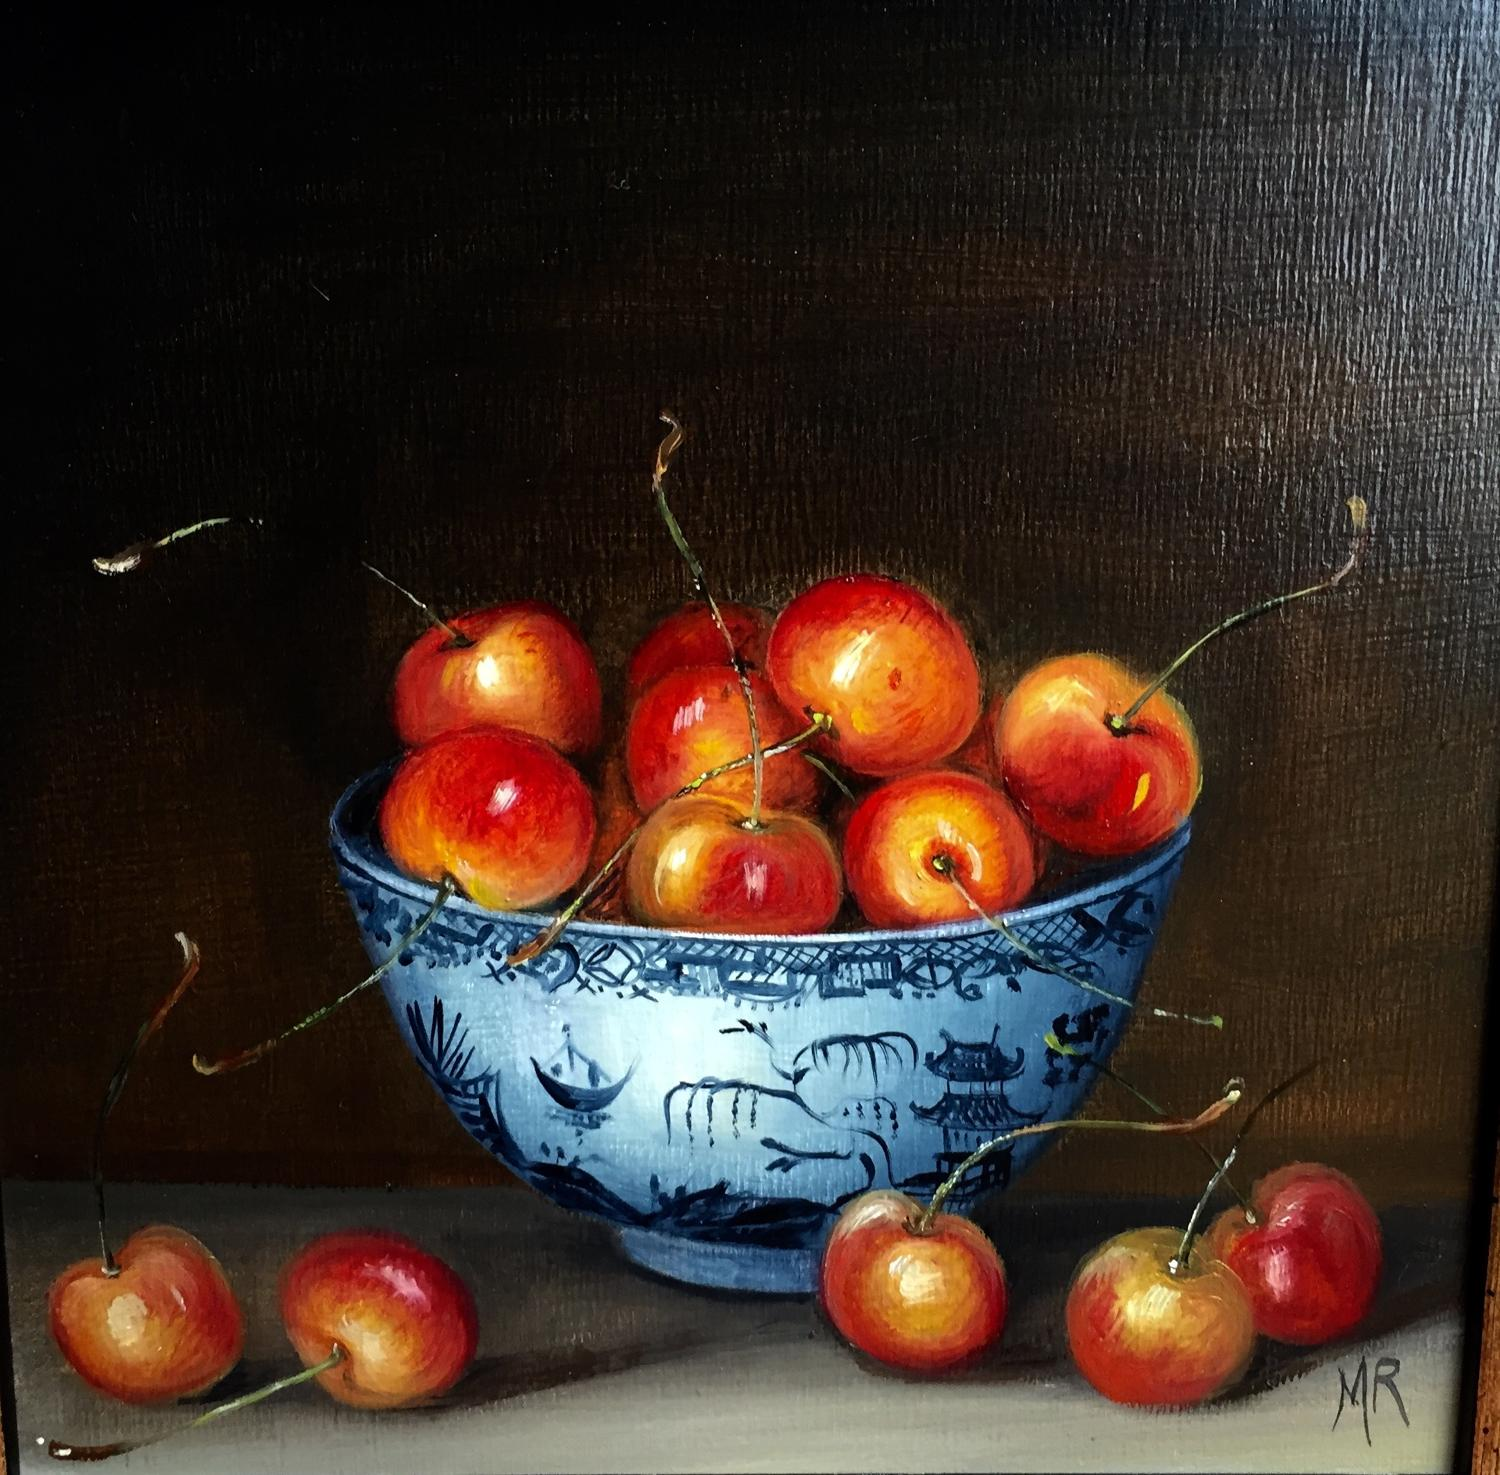 Painting of cherries in a bowl